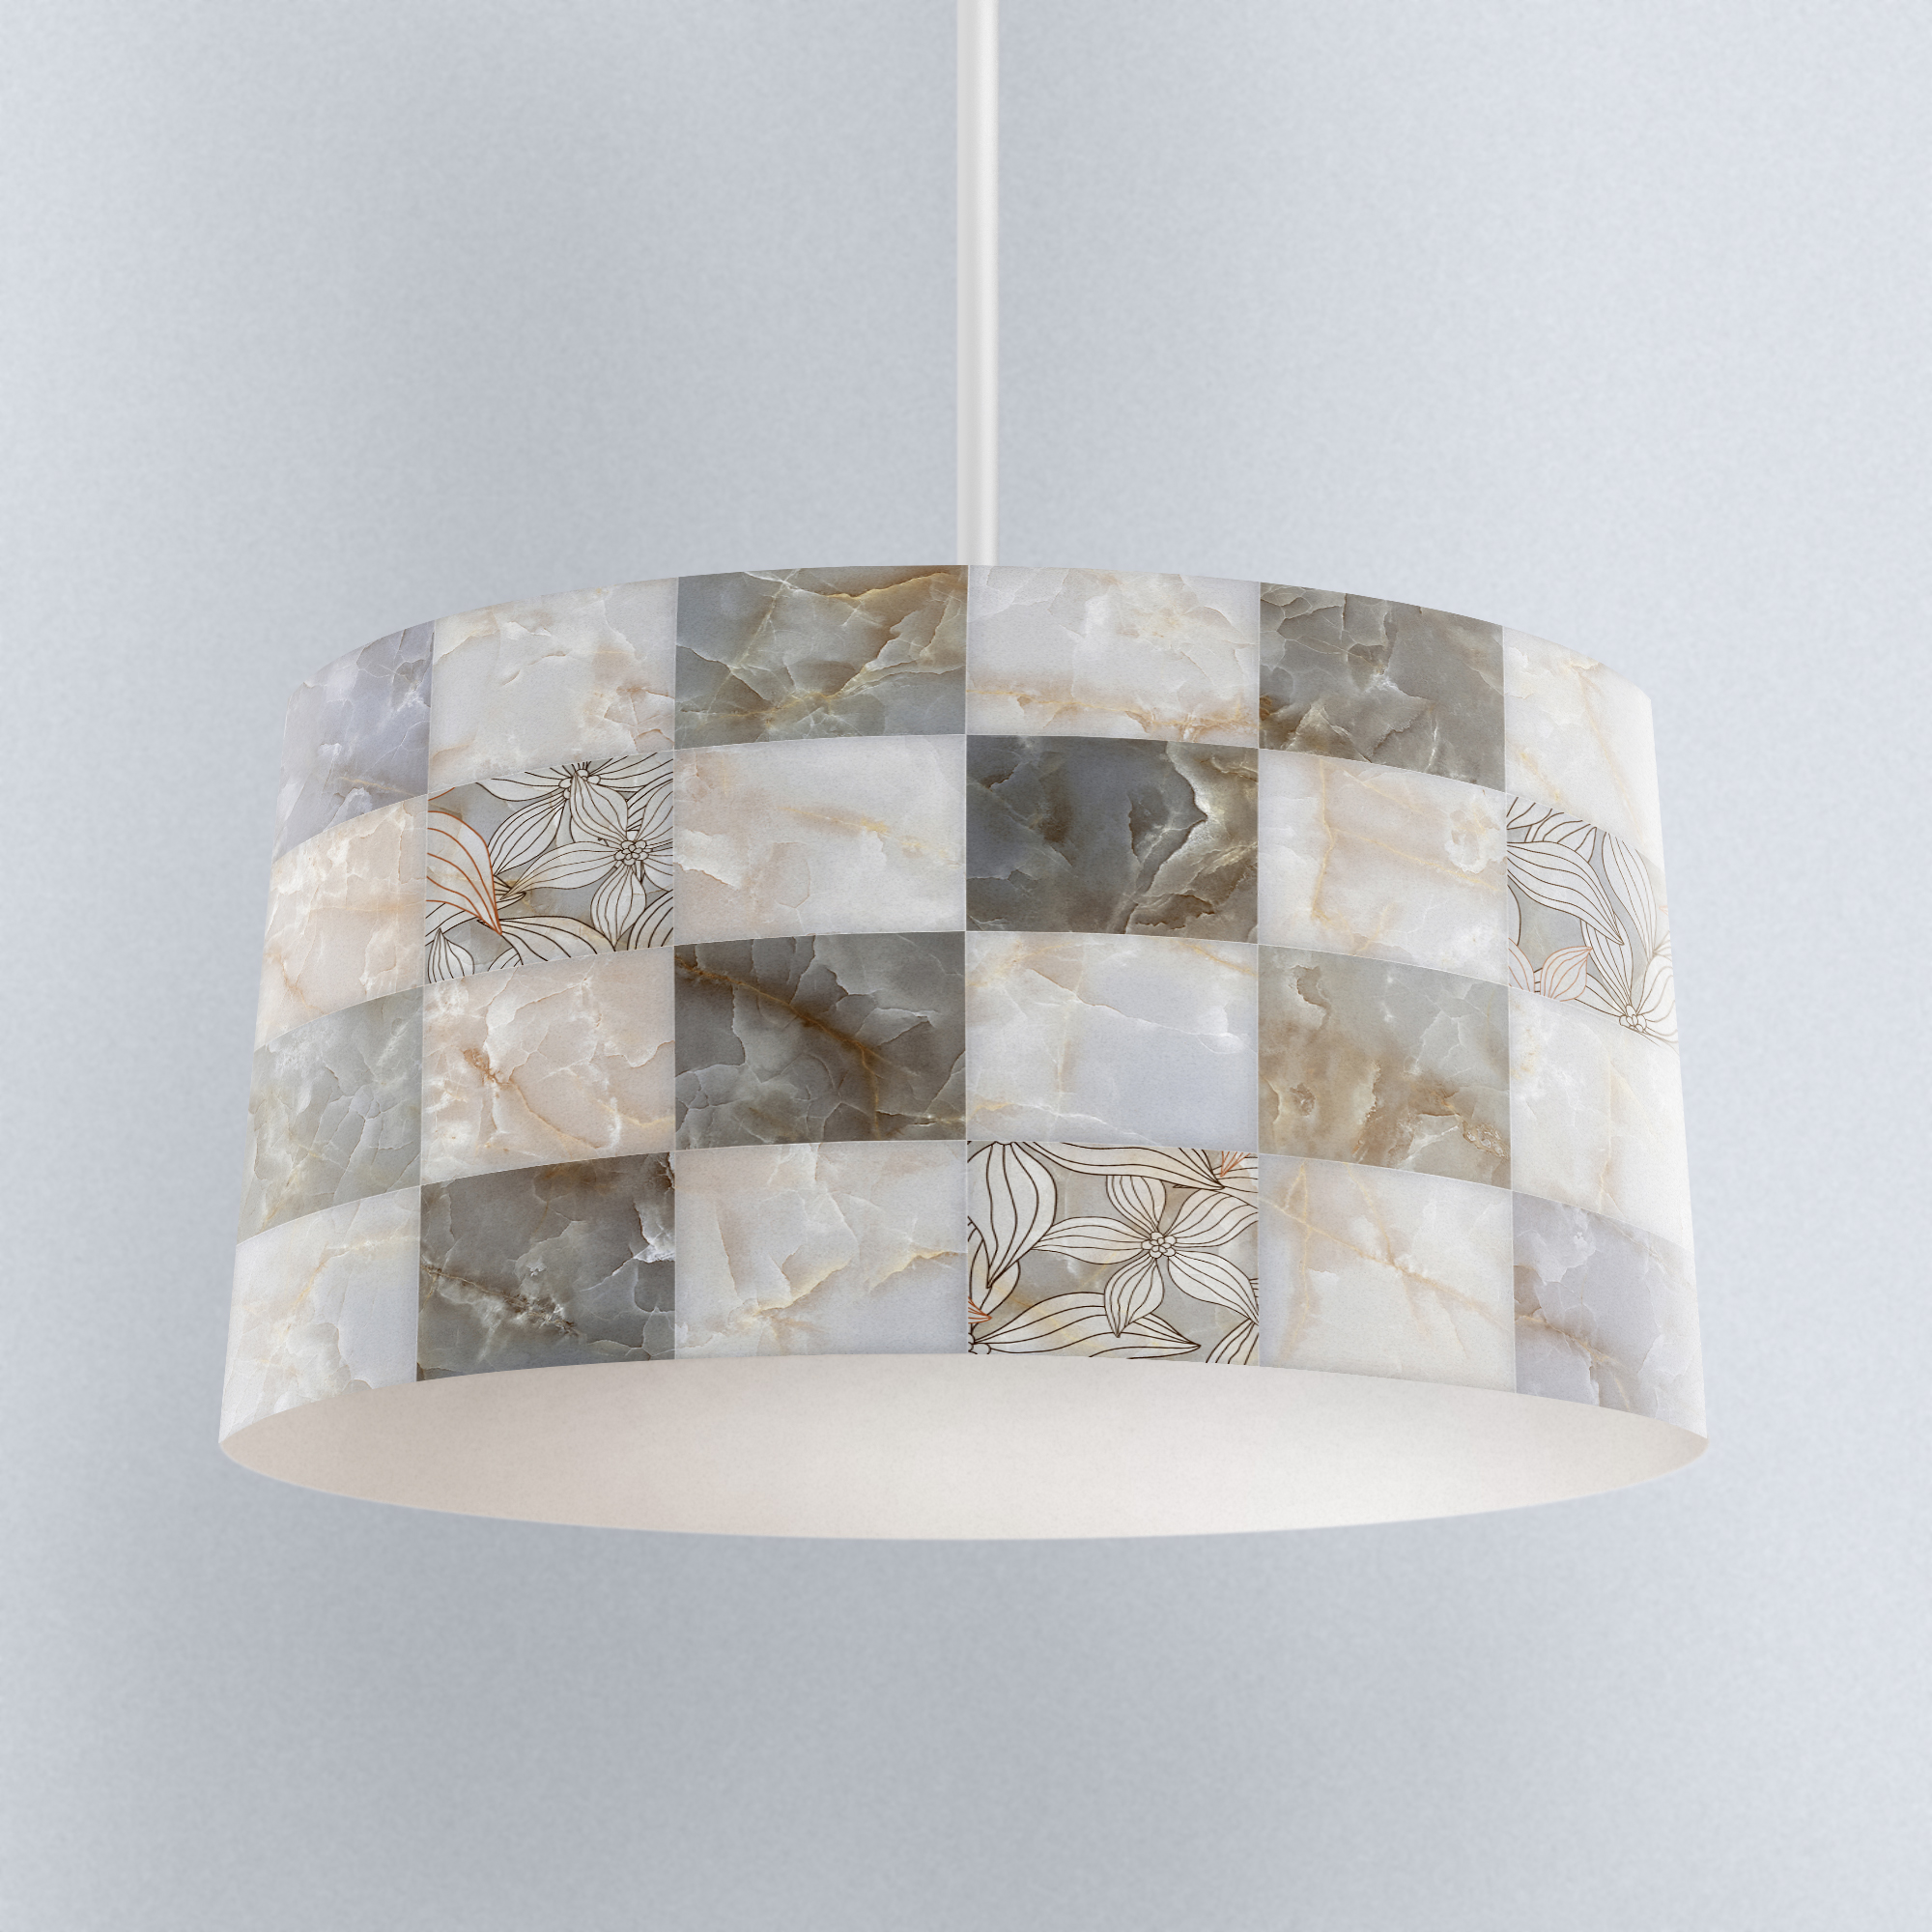 Else Gray White Marble Boxes Digital Printed Fabric Chandelier Lamp Drum Lampshade Floor Ceiling Pendant Light Shade